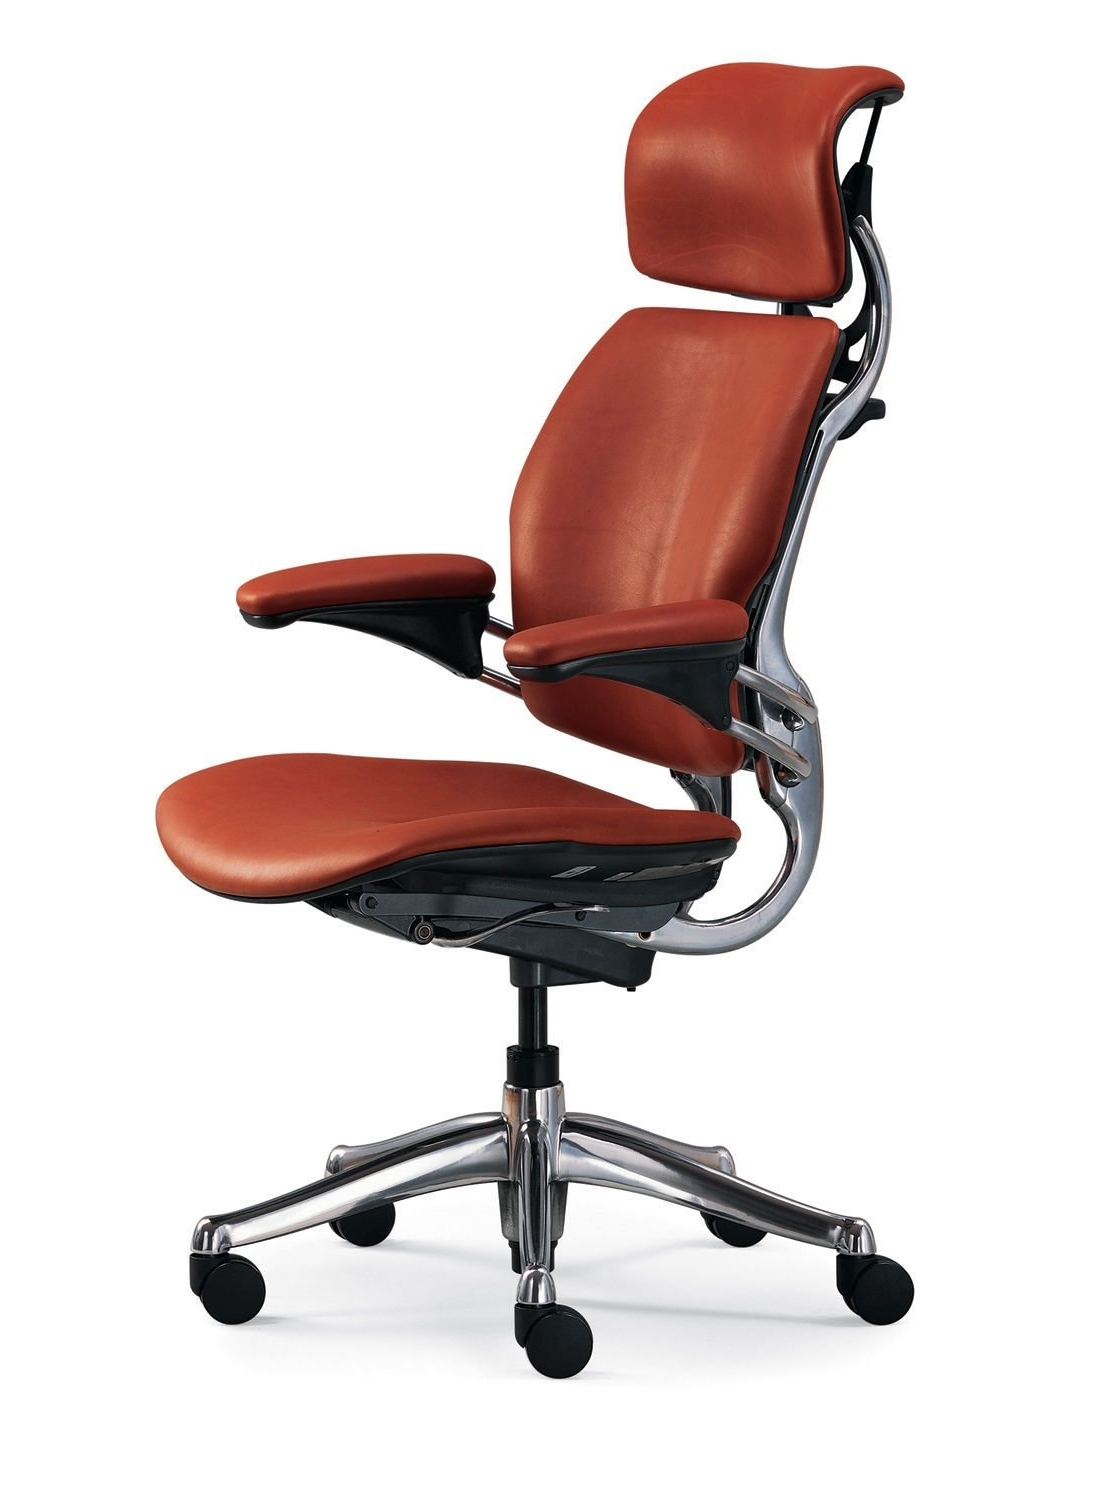 Popular Executive Office Chairs With Back Support Regarding Best Office Chair For 2018 – The Ultimate Guide – Office Chairs (View 4 of 20)